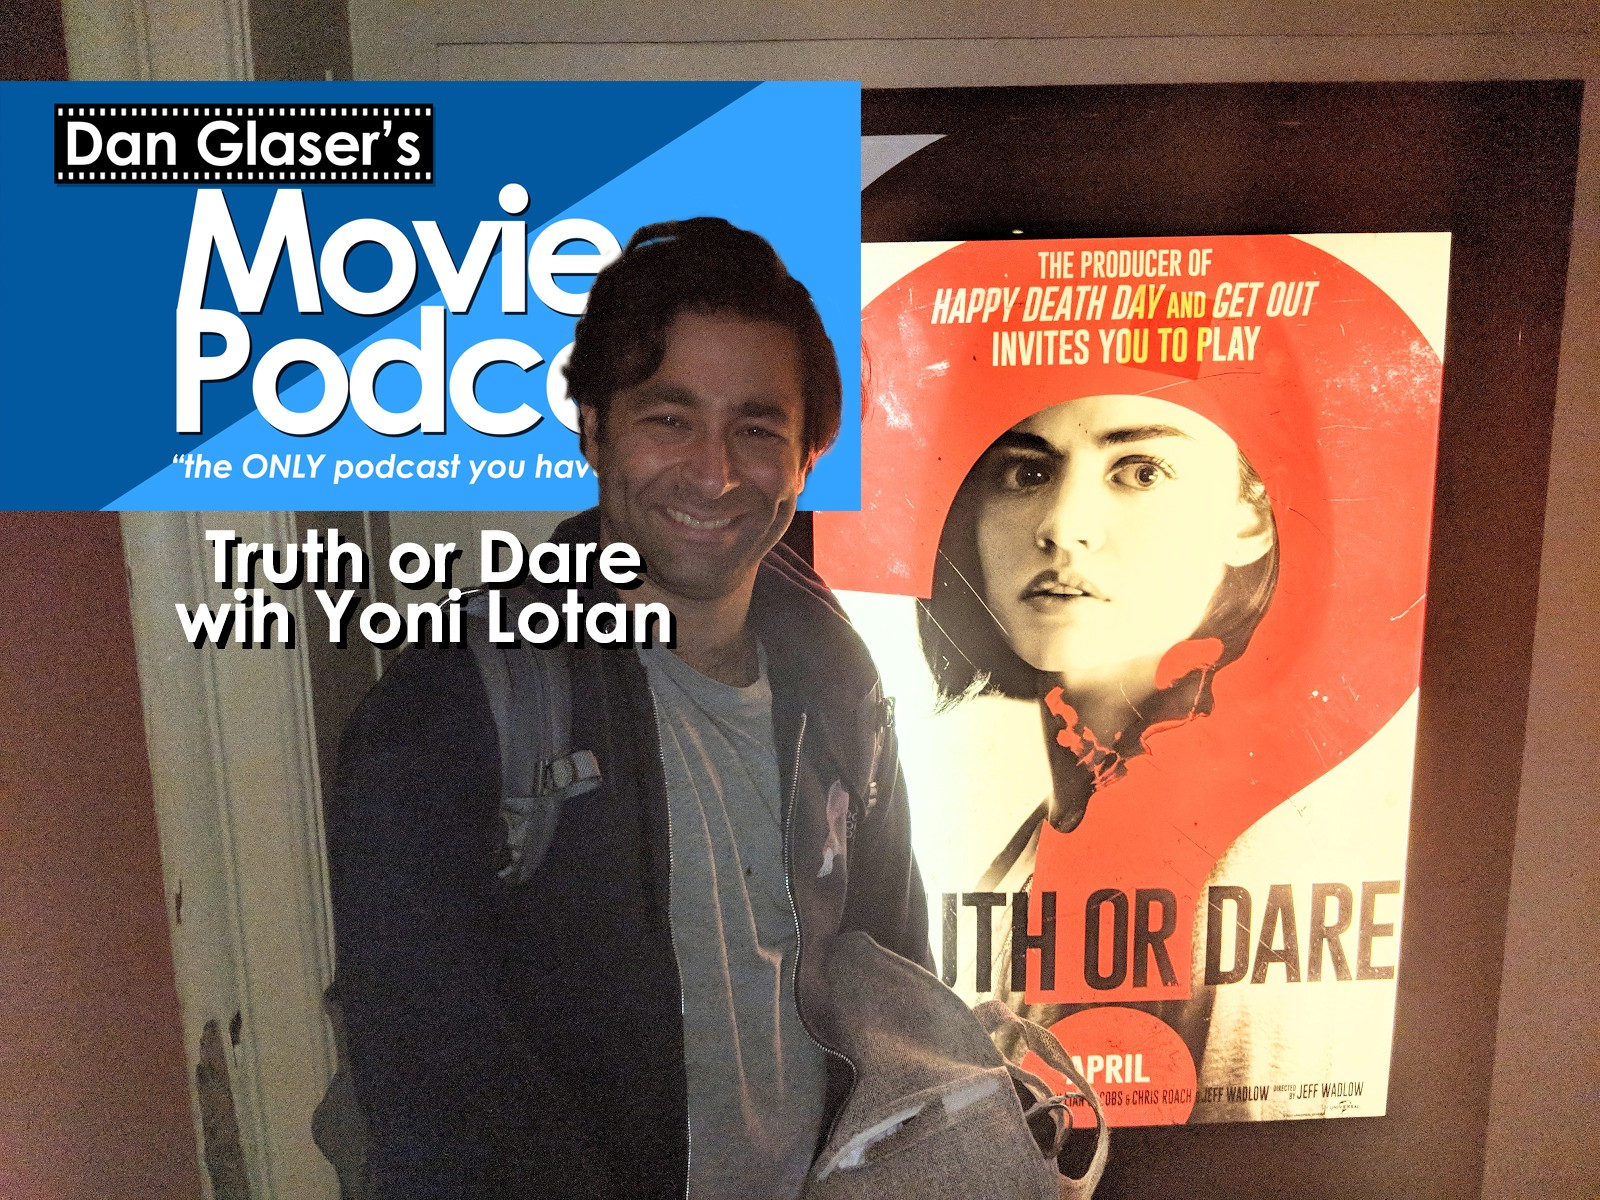 Dan Glaser's Movie Podcast: Episode 09 — Truth or Dare with Yoni Lotan